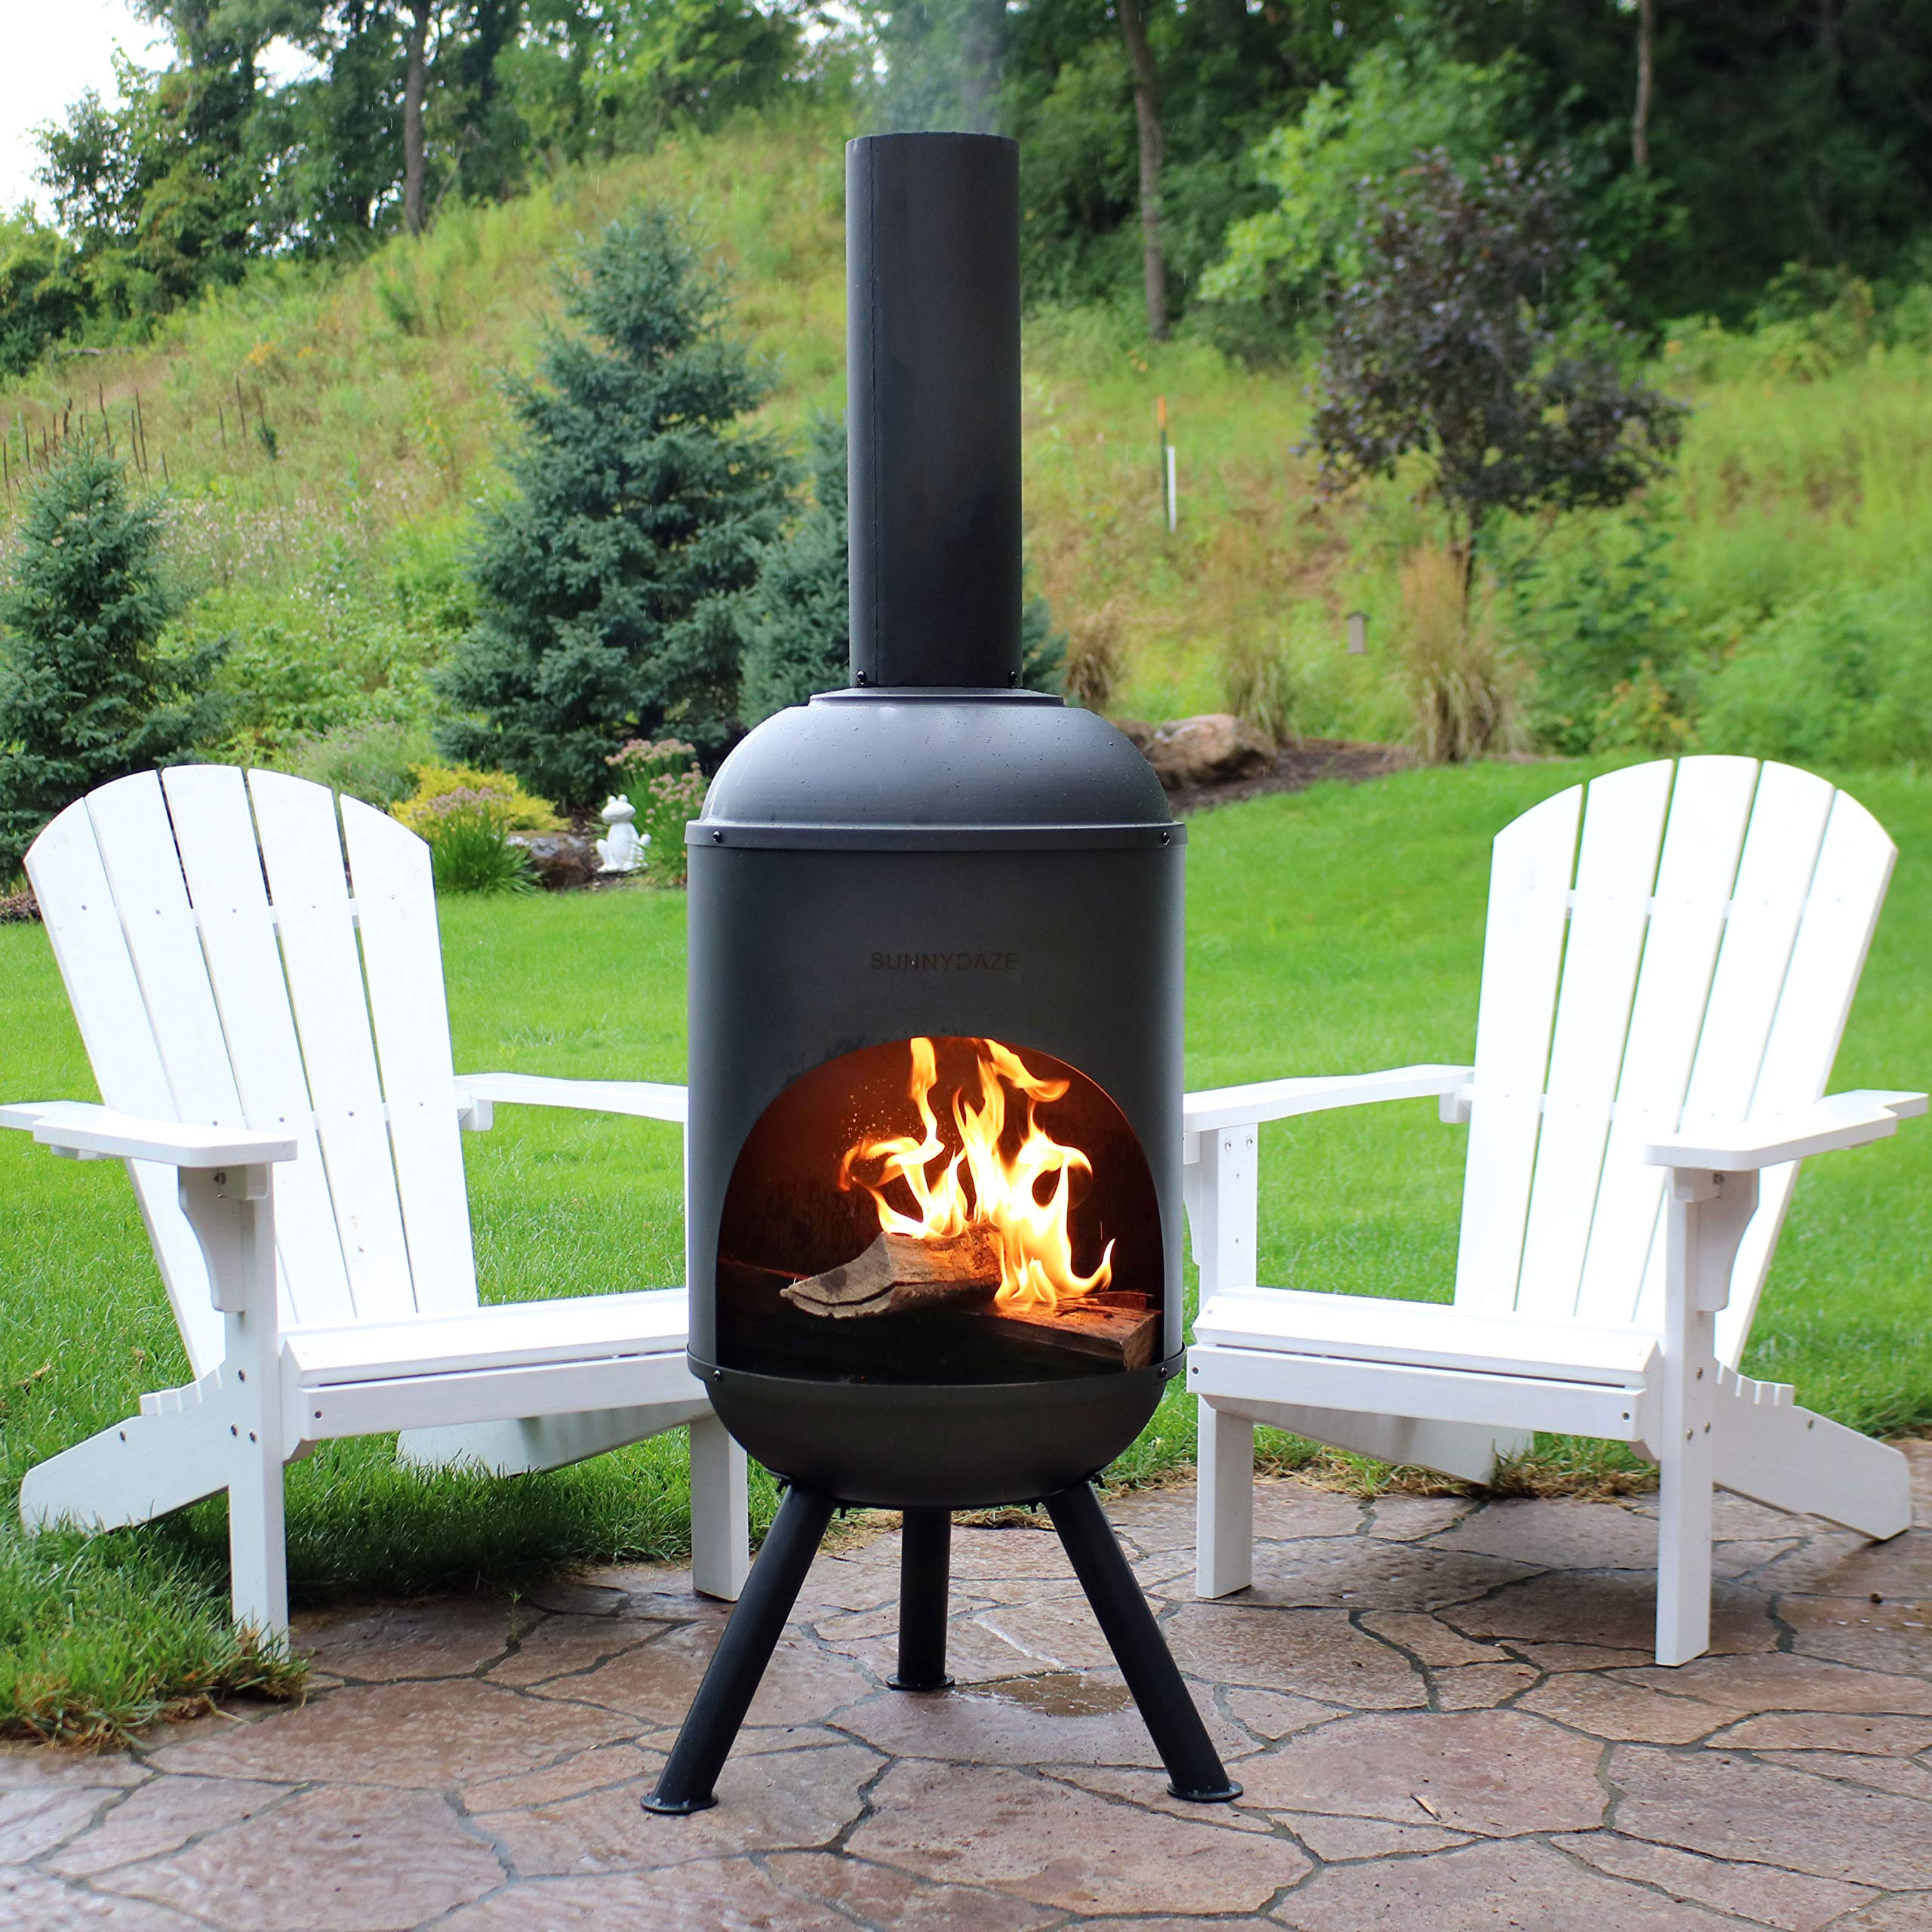 Sunnydaze Modern Chiminea - Steel Outdoor Wood-Burning ... on Outdoor Fireplace Pit id=78490